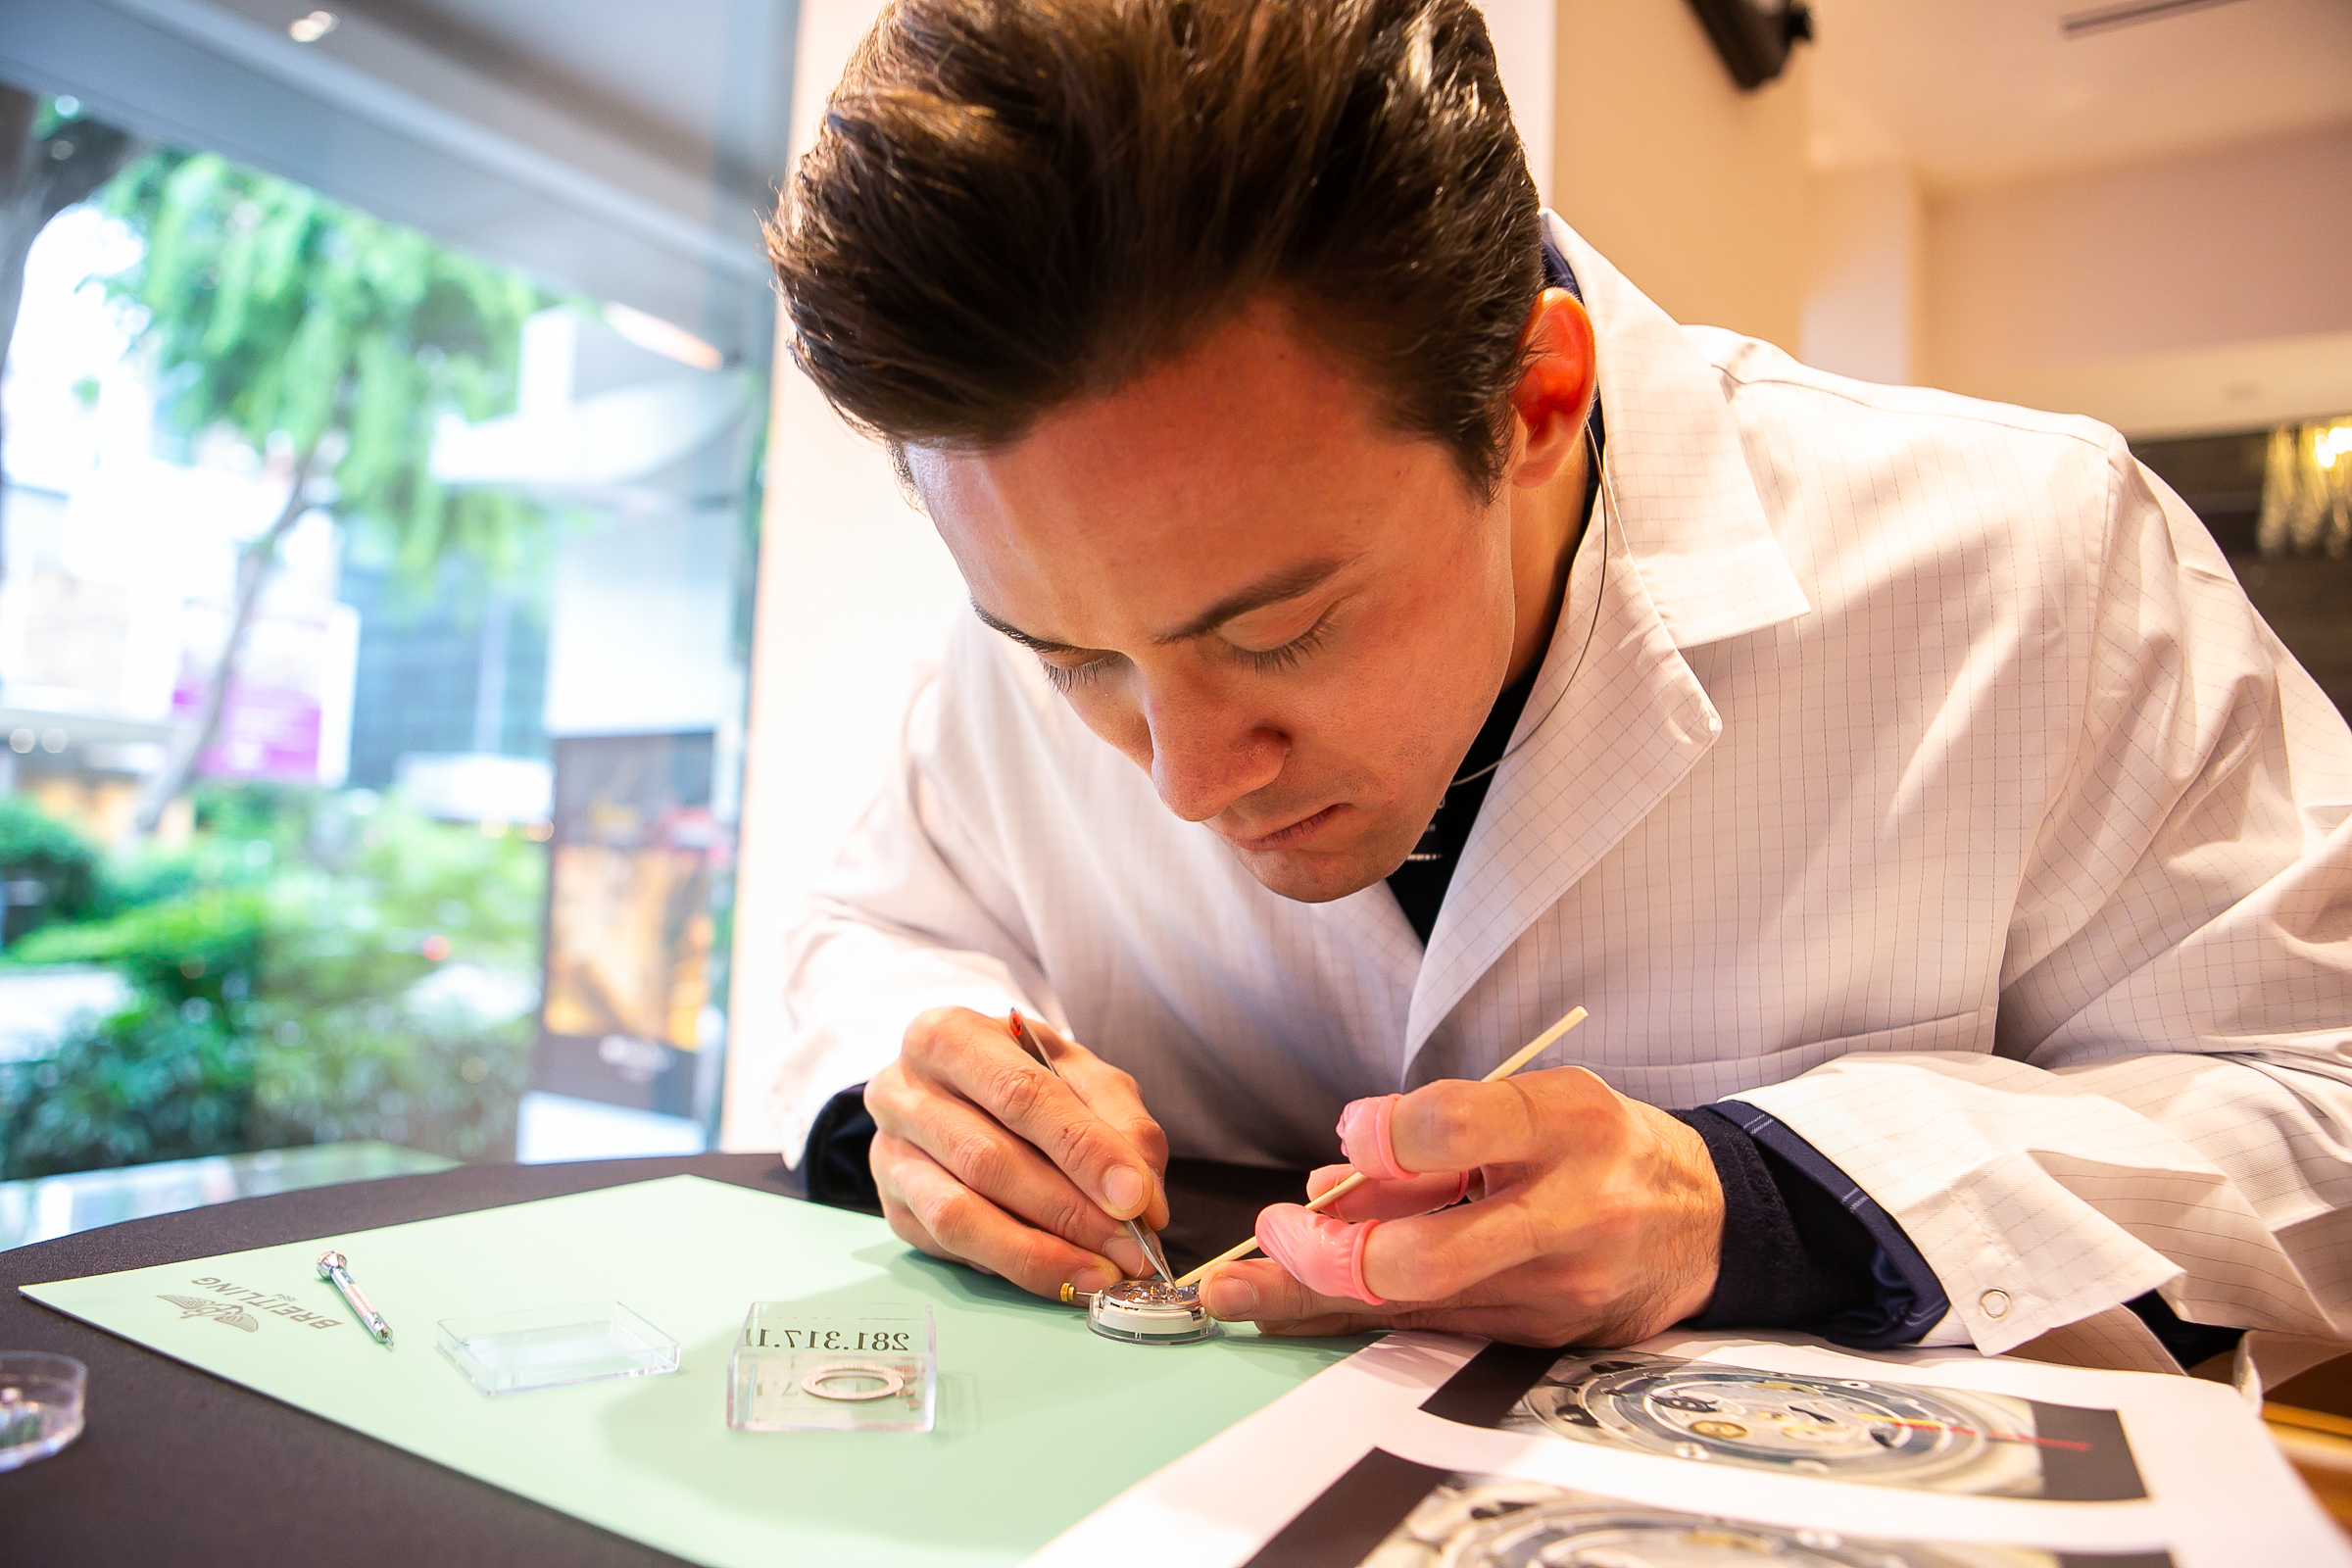 Dr Shane Abucewicz Tan, one of the 2018 A-Listers, focusing on putting together the Breitling watch's movement